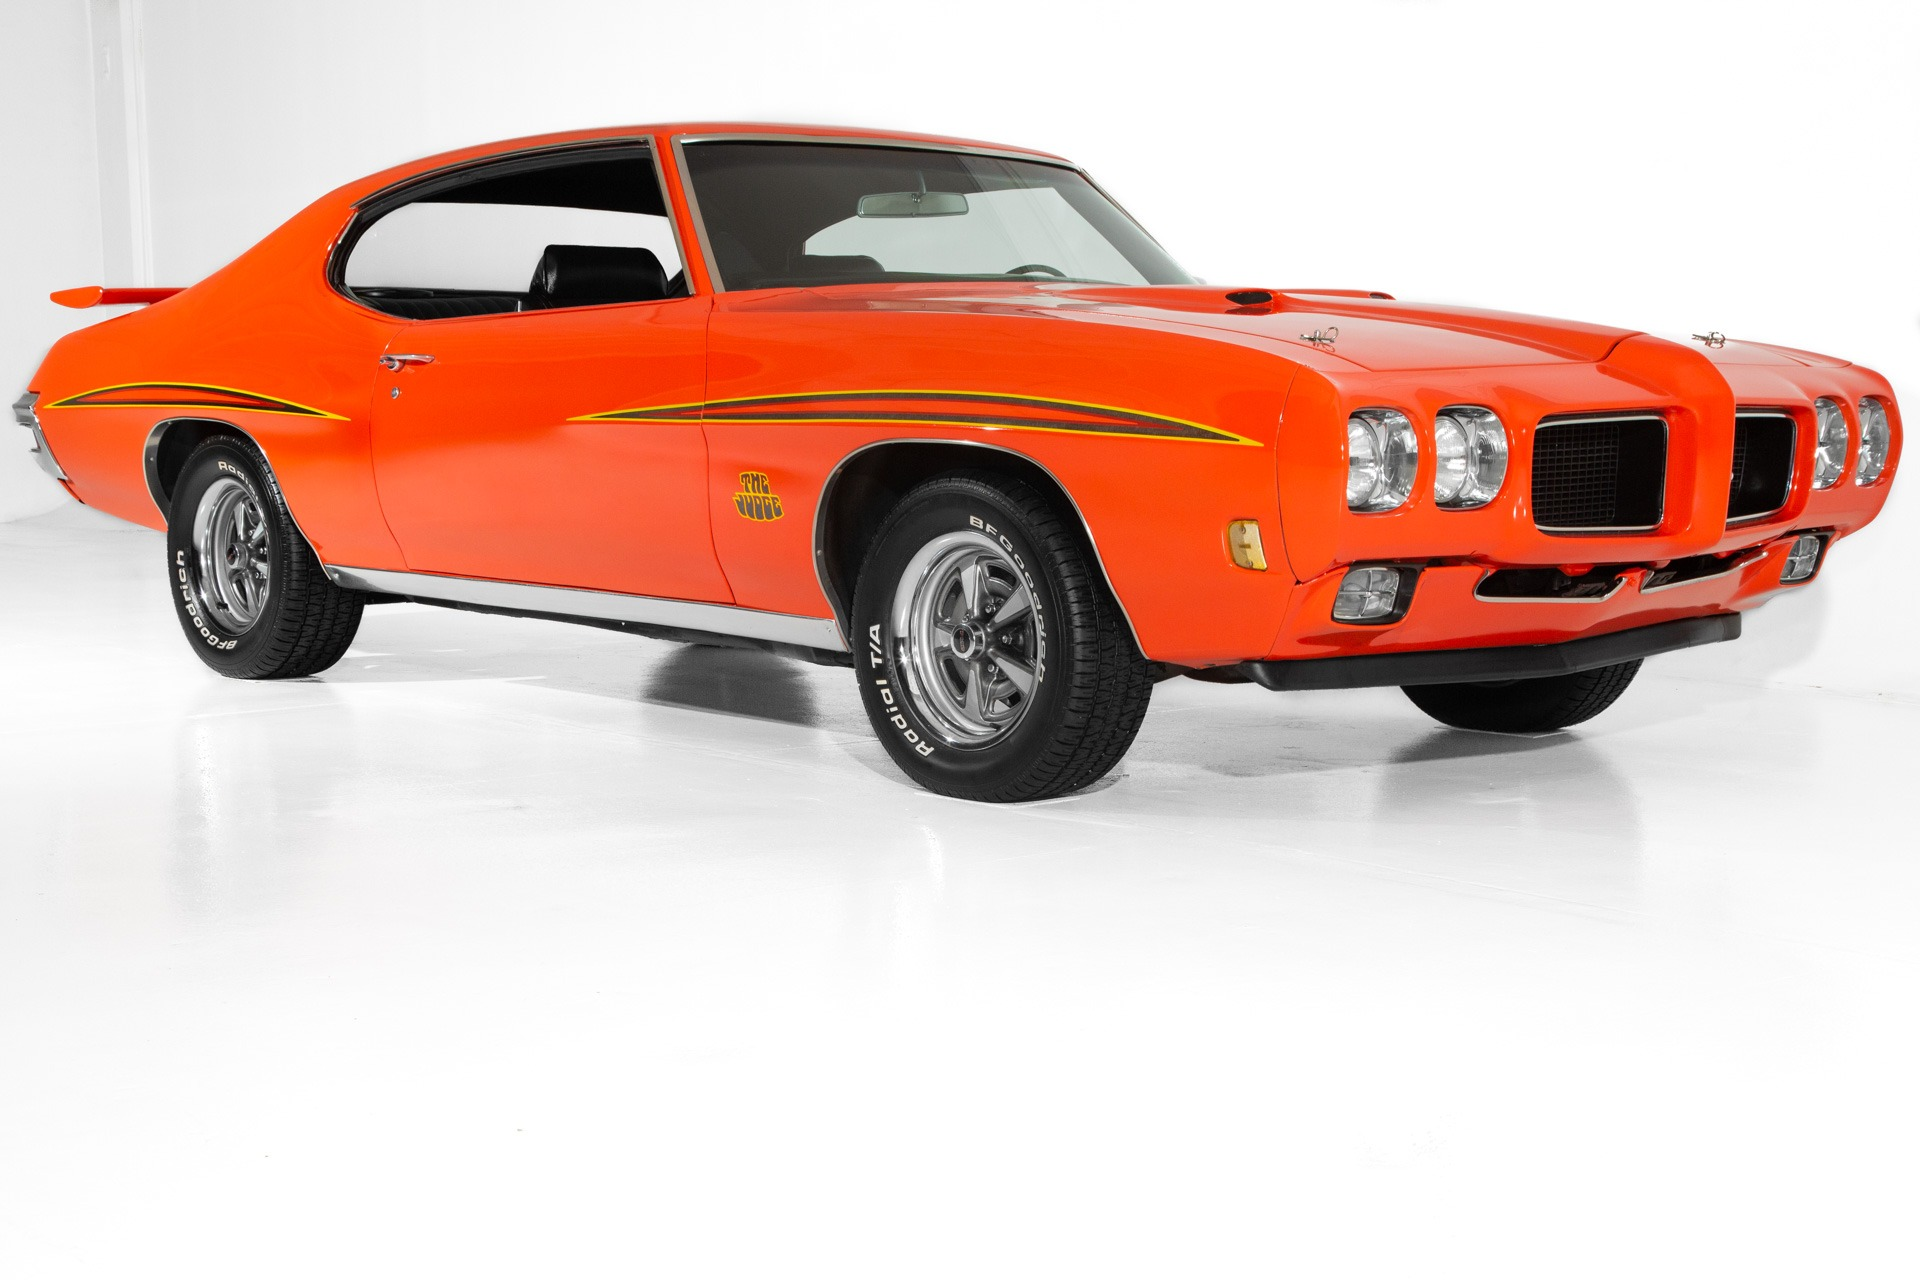 For Sale Used 1970 Pontiac GTO Judge Stripes, 400 ci engine | American Dream Machines Des Moines IA 50309